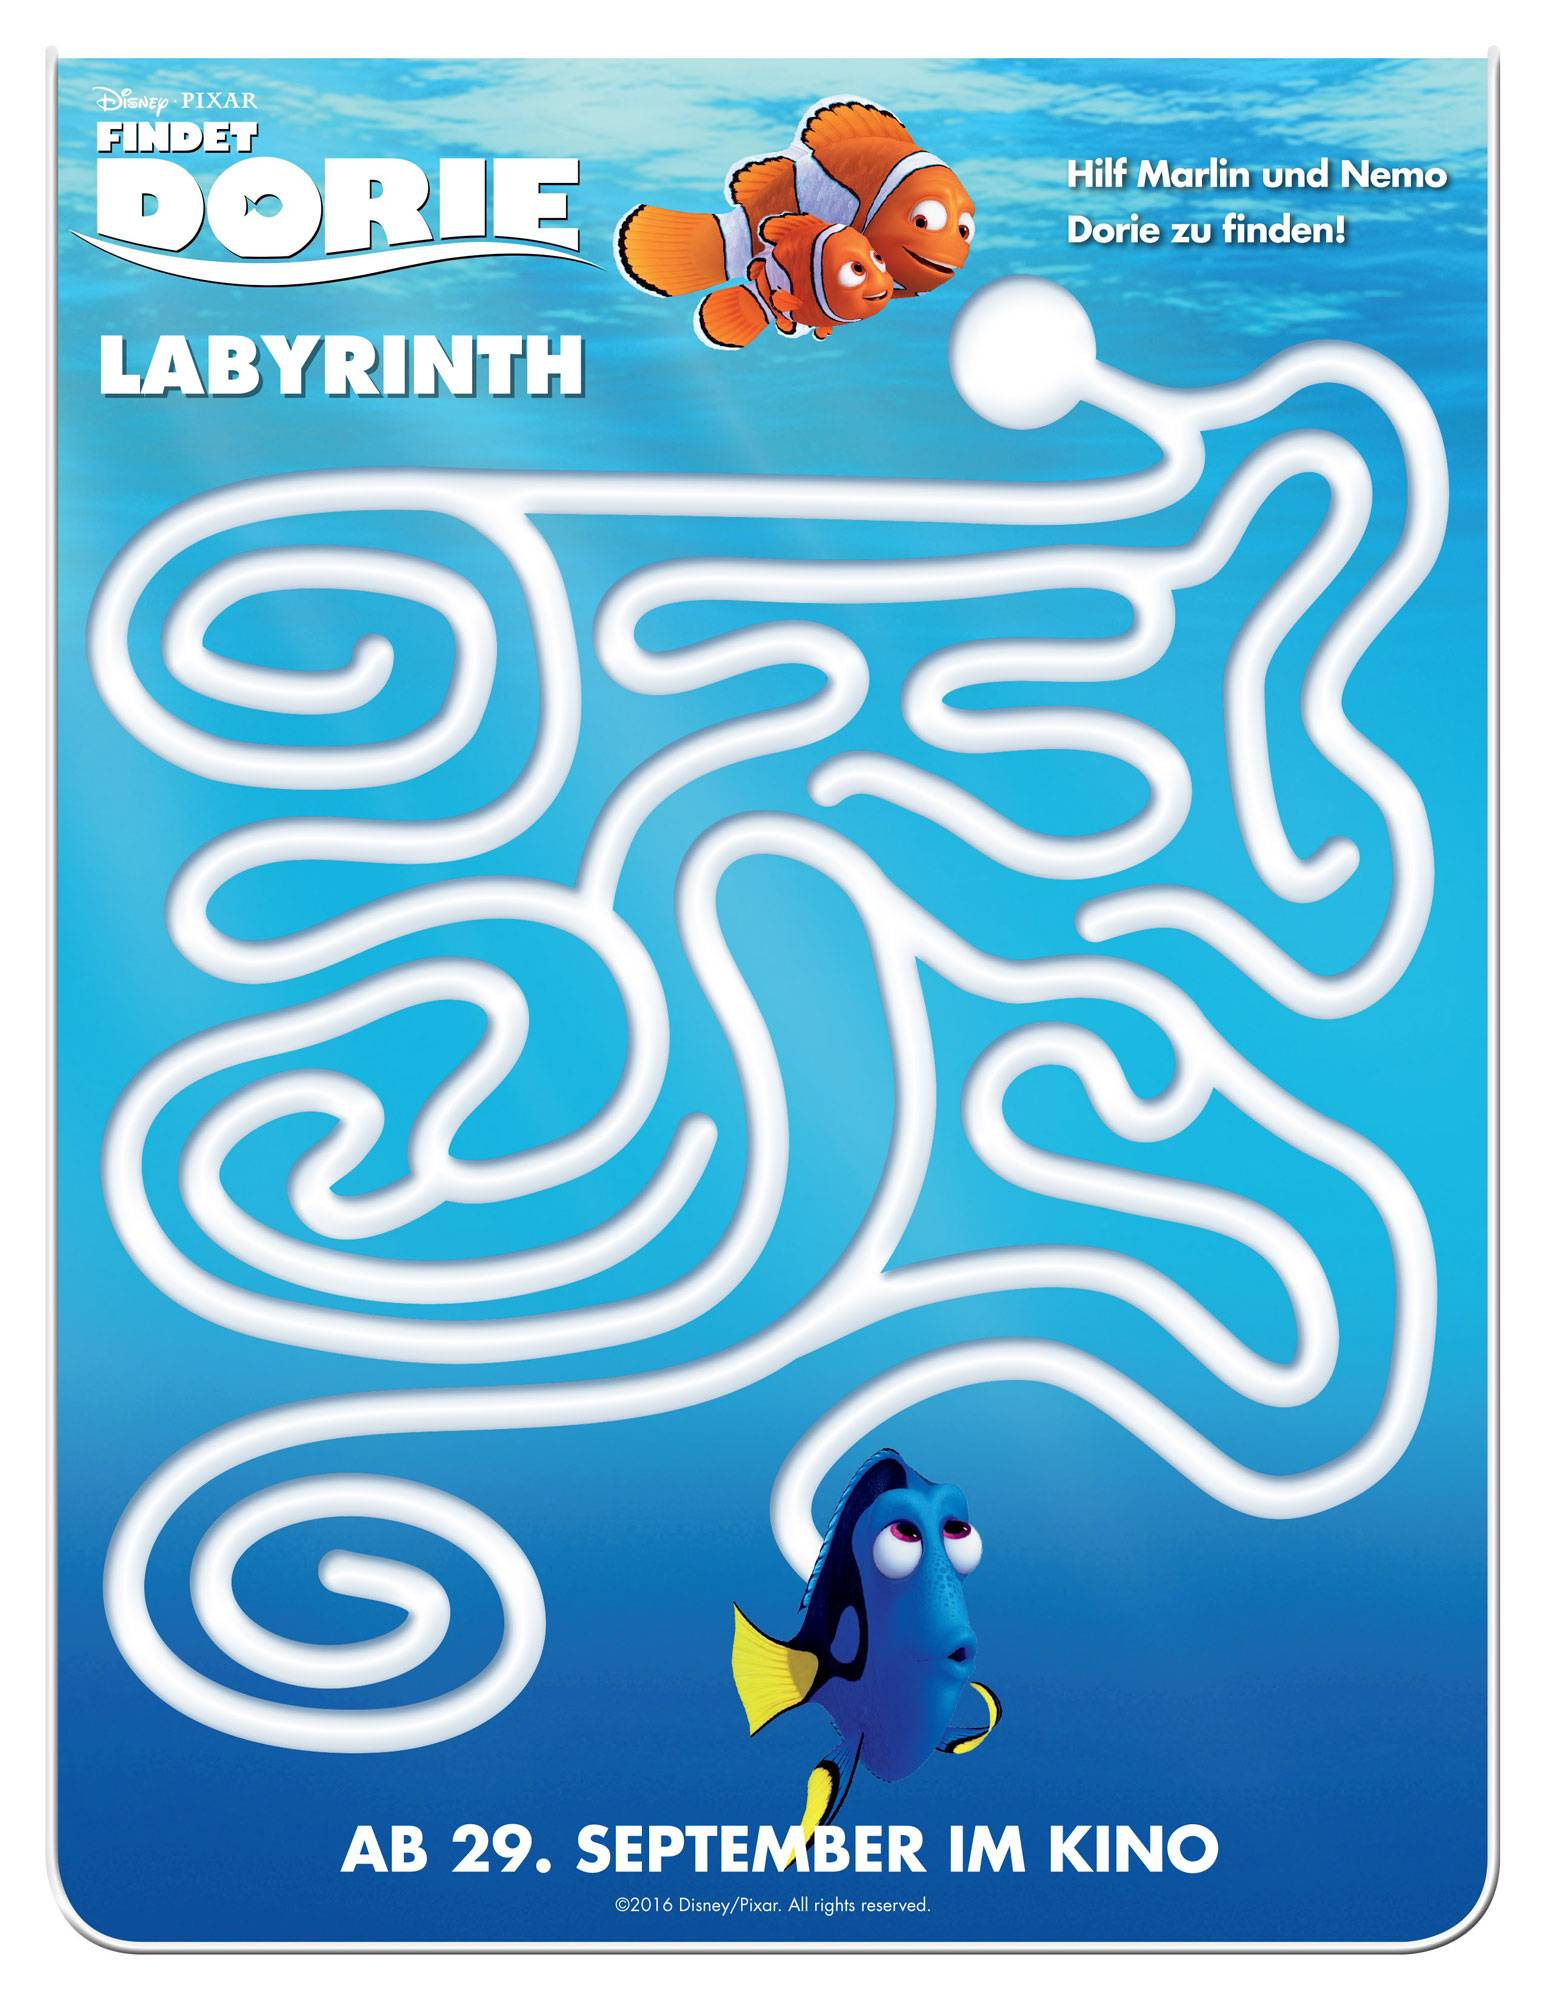 Ausmalbild Labyrinthe Fur Kinder Findet Dorie Labyrinth